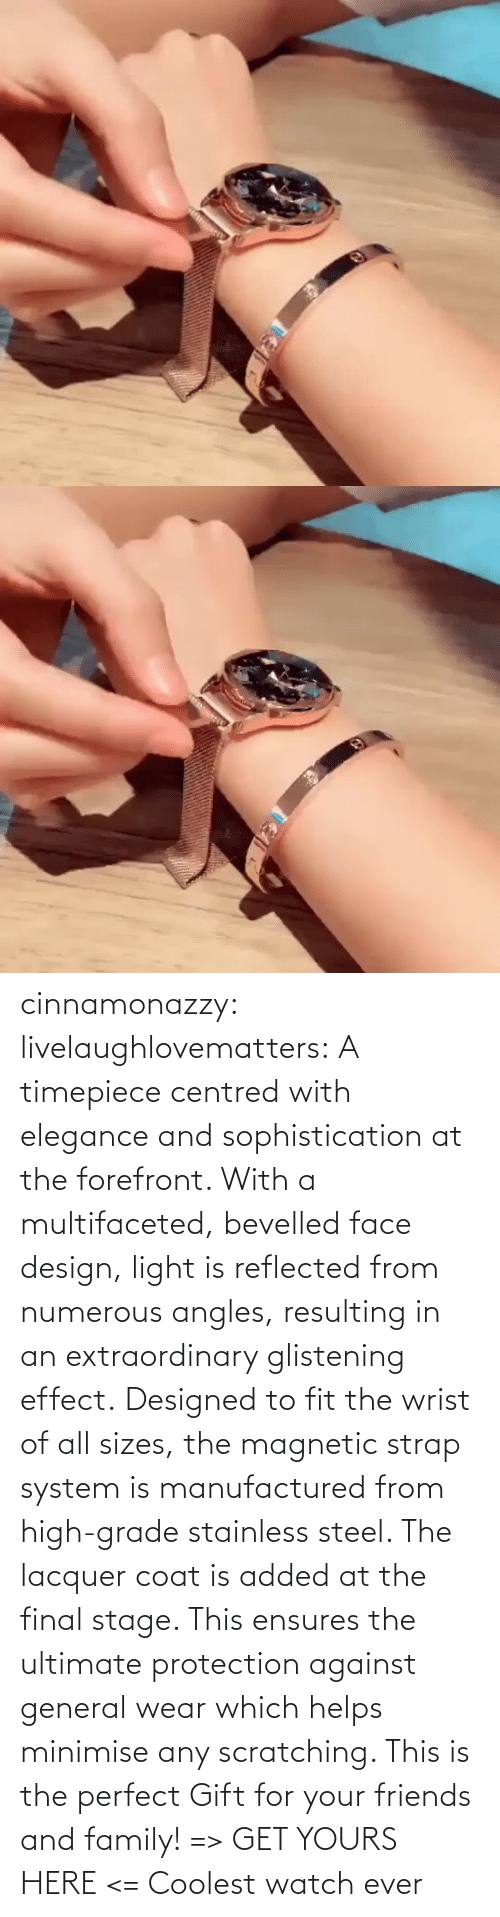 Friends And Family: cinnamonazzy:  livelaughlovematters: A timepiece centred with elegance and sophistication at the forefront. With a multifaceted, bevelled face design, light is reflected from numerous angles, resulting in an extraordinary glistening effect. Designed to fit the wrist of all sizes, the magnetic strap system is manufactured from high-grade stainless steel. The lacquer coat is added at the final stage. This ensures the ultimate protection against general wear which helps minimise any scratching. This is the perfect Gift for your friends and family! => GET YOURS HERE <=    Coolest watch ever